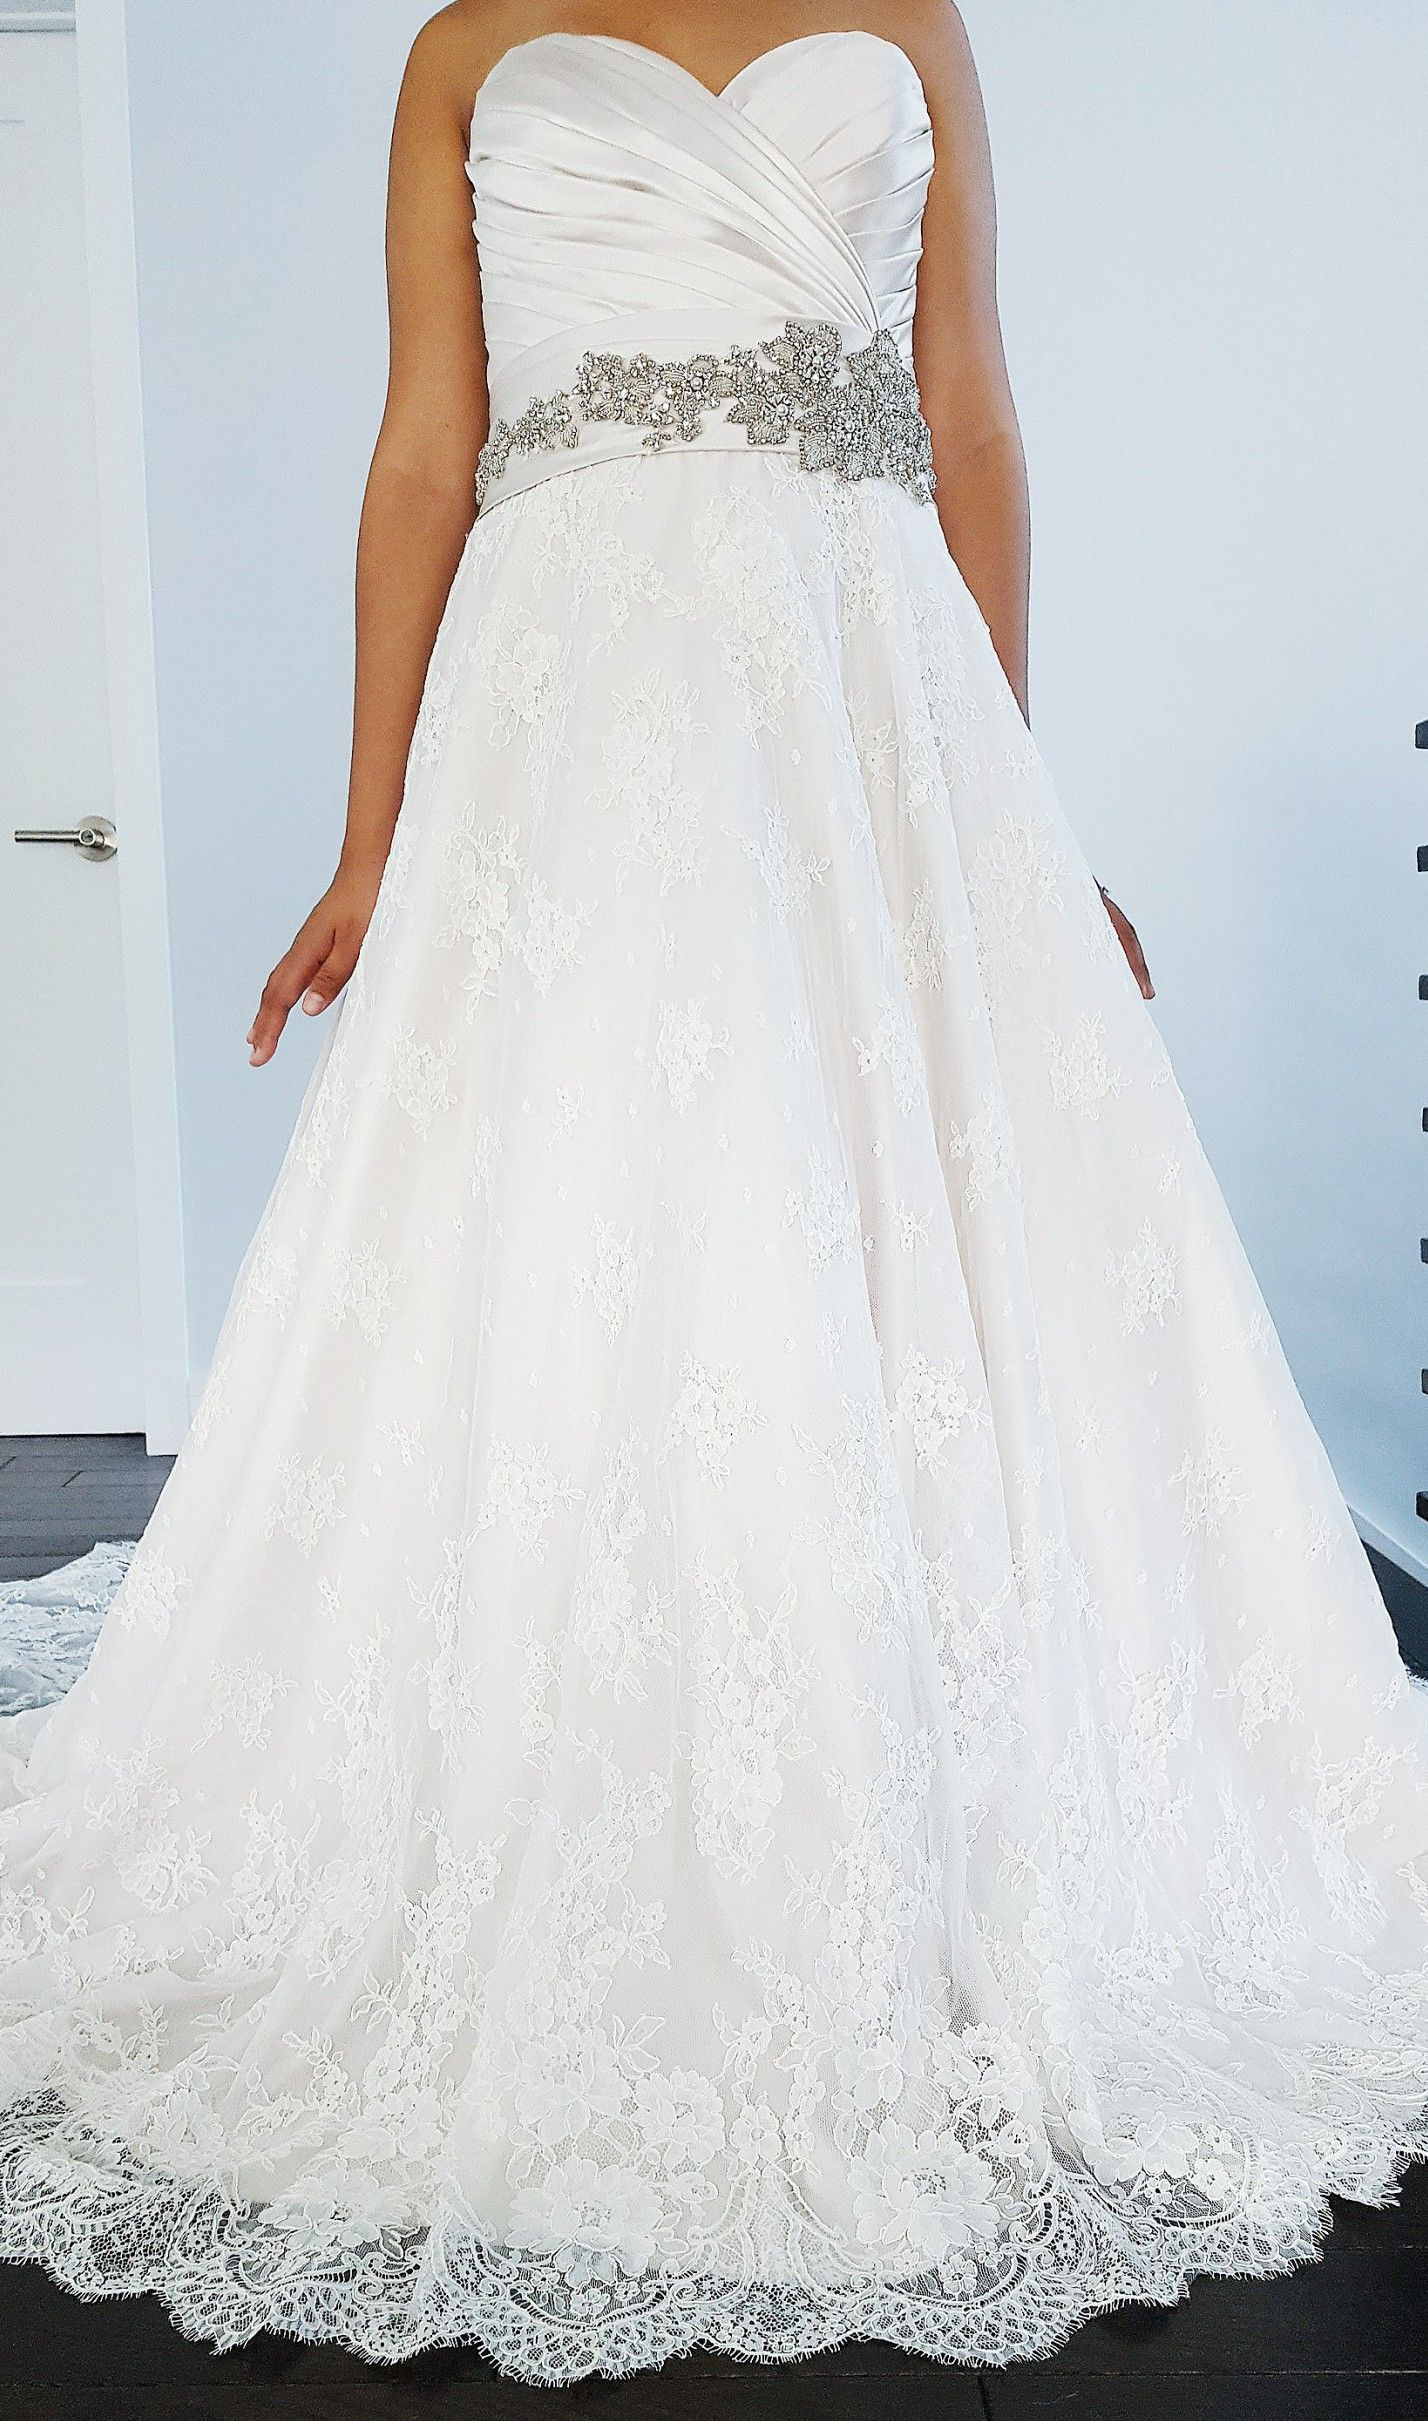 Have Plus Size Wedding Gowns Like This Custom Made To Order With Any Changes You Need